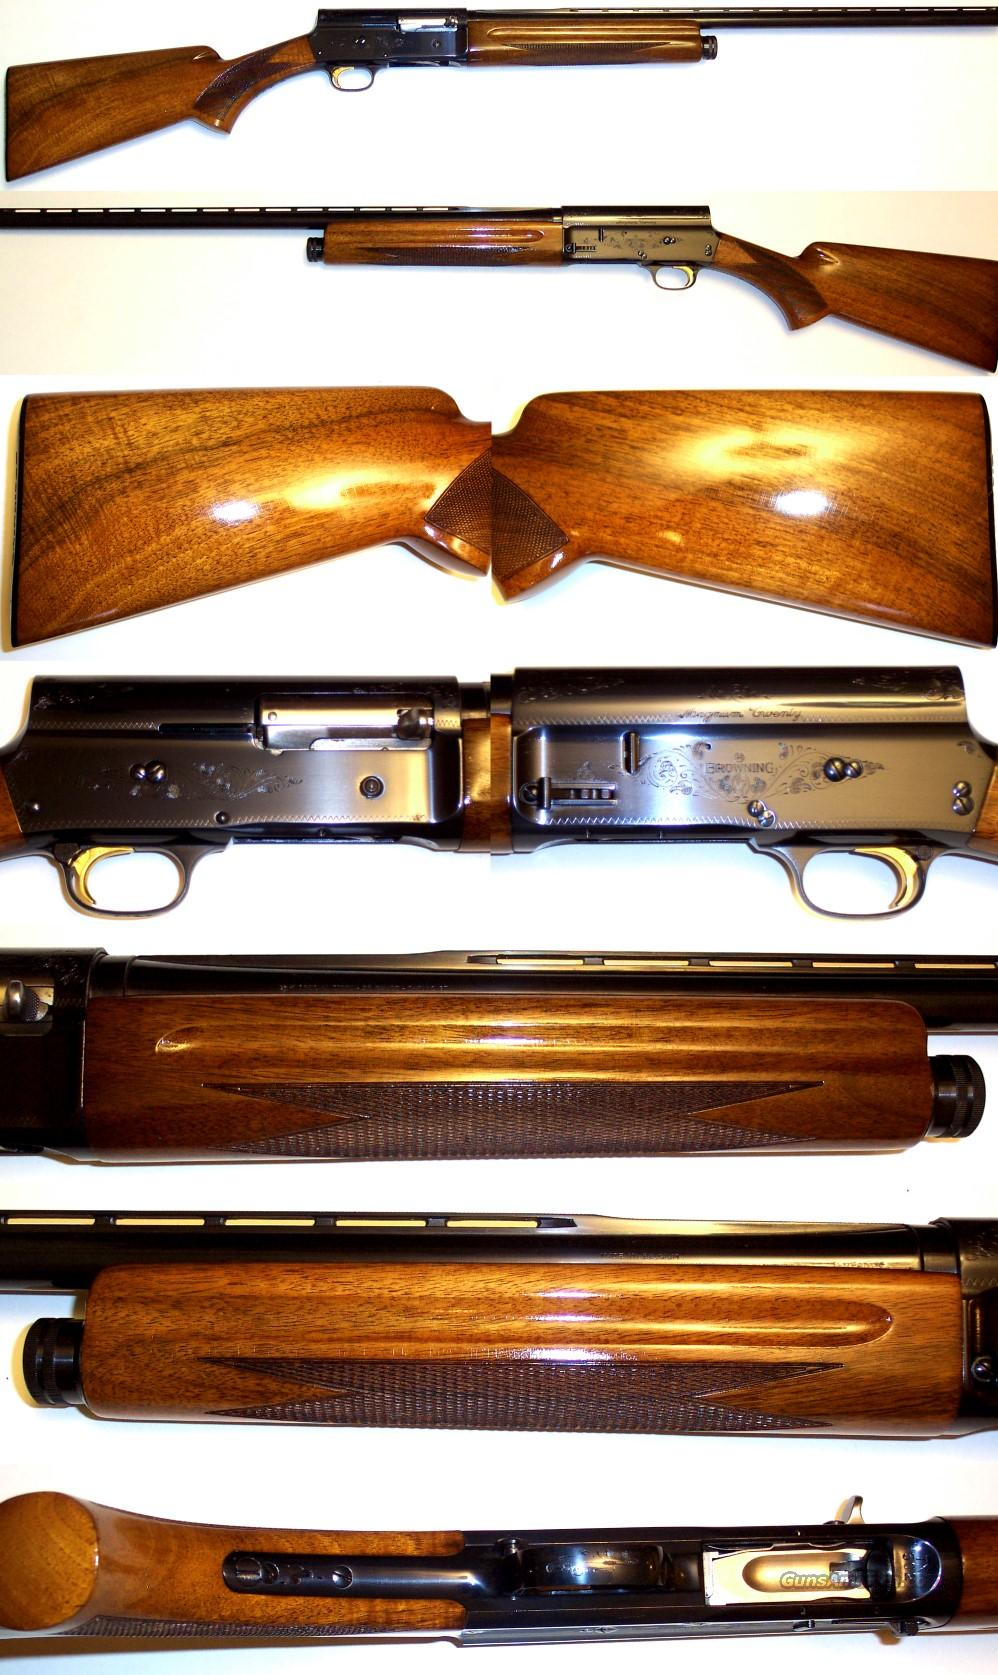 '67 Belgium A5 Browning MAG 20 mint condition  Guns > Shotguns > Browning Shotguns > Autoloaders > Hunting